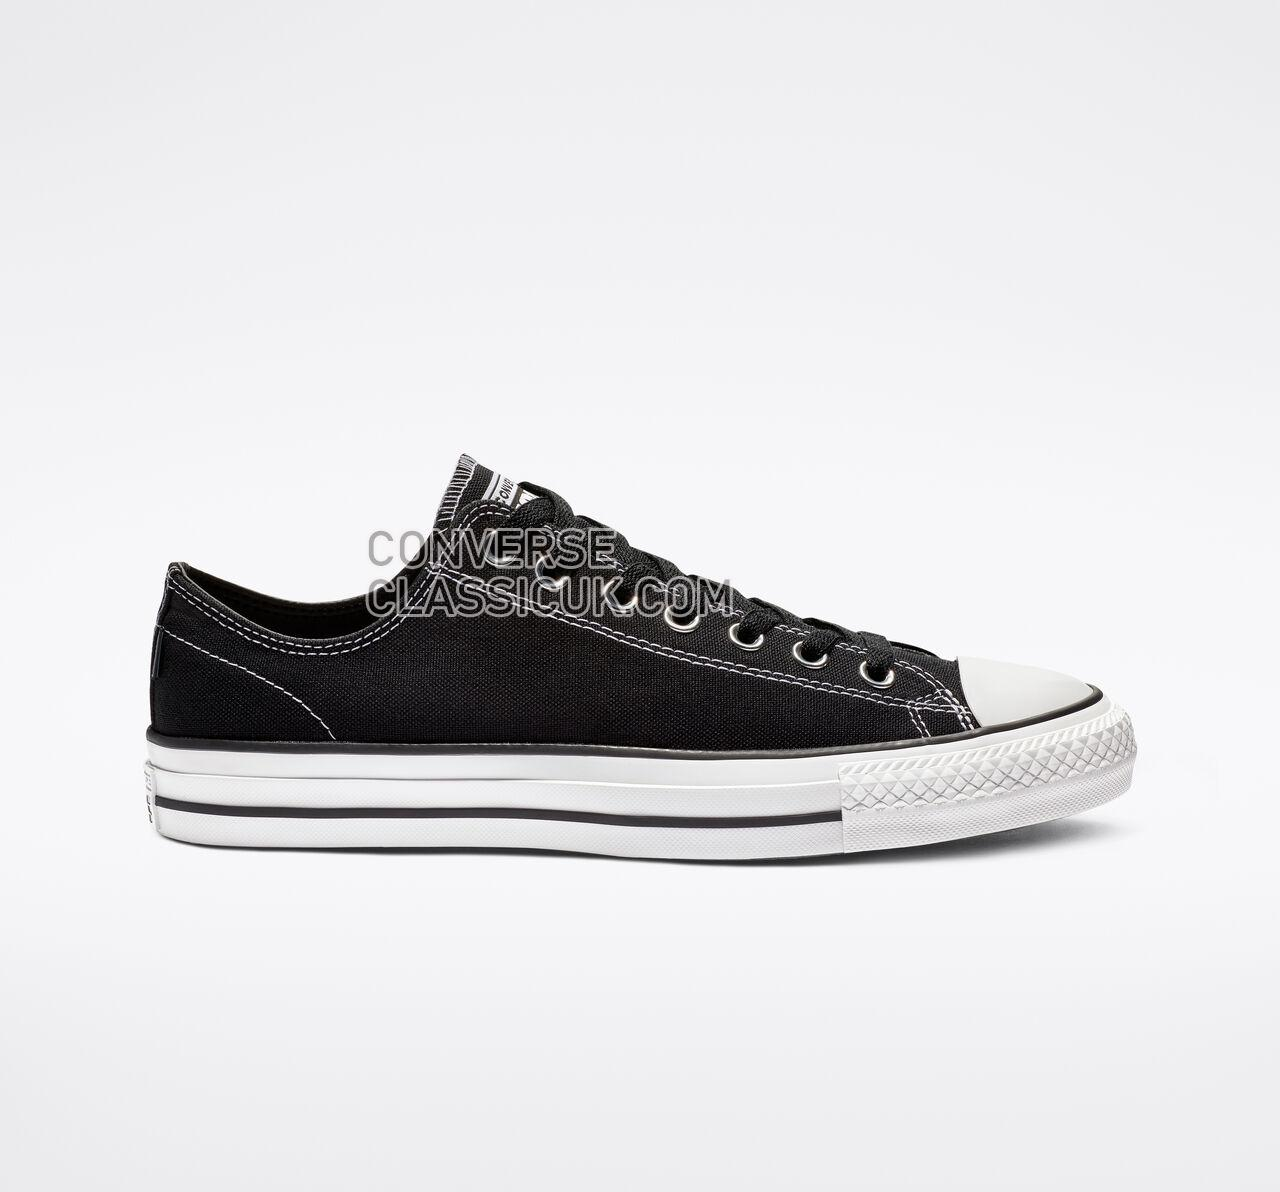 Converse CTAS Pro Low Top Mens Womens Unisex 159576C Black/Black/White Shoes